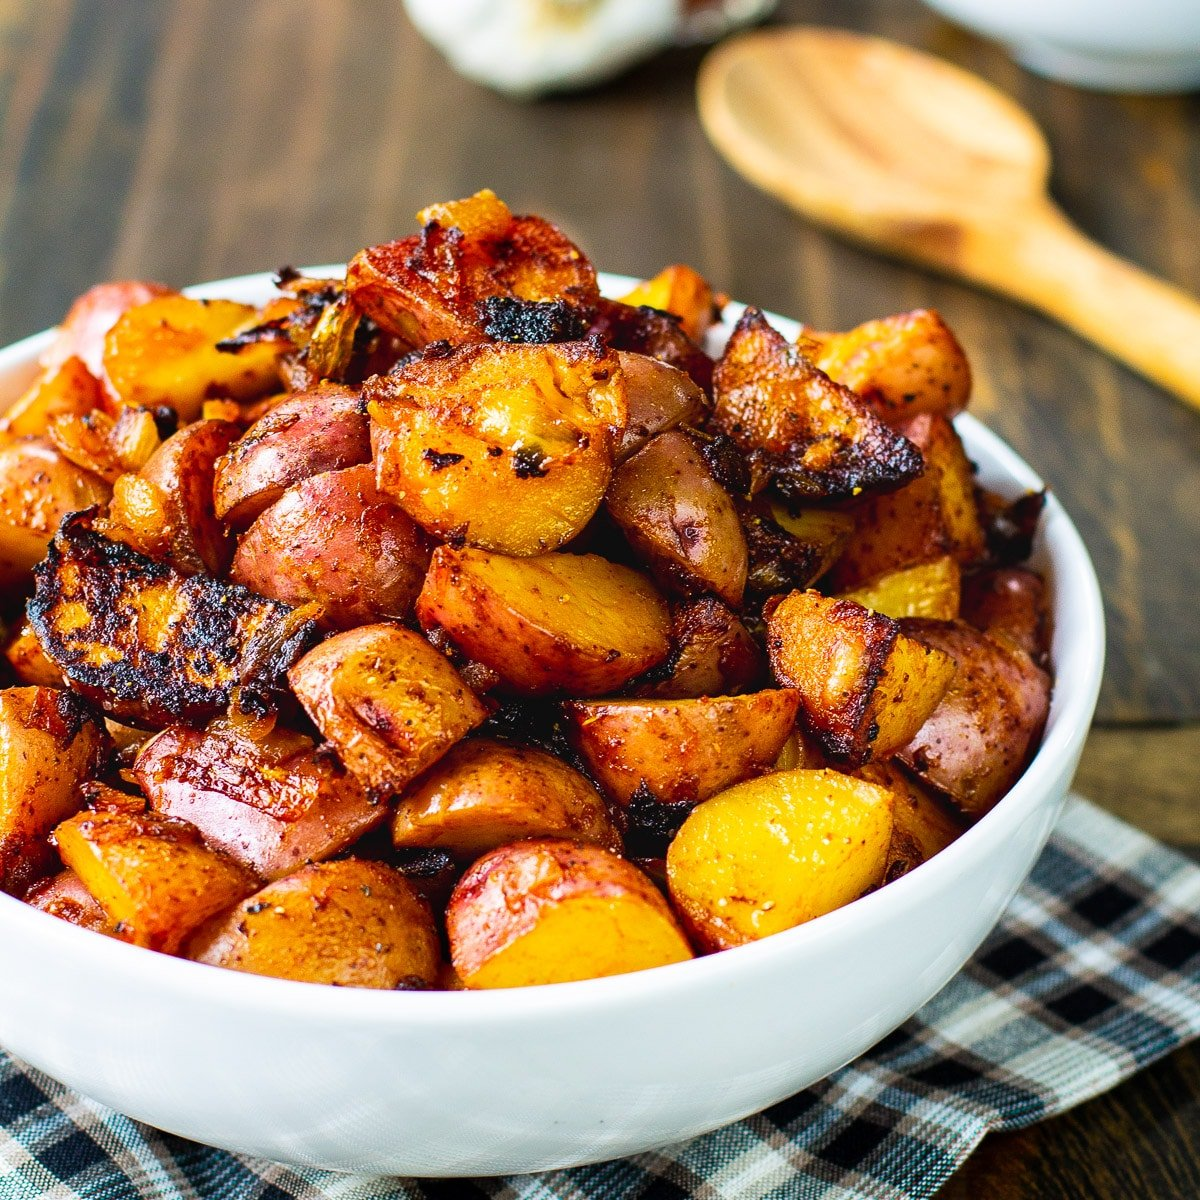 Bowl full of potatoes cooked with paprika.